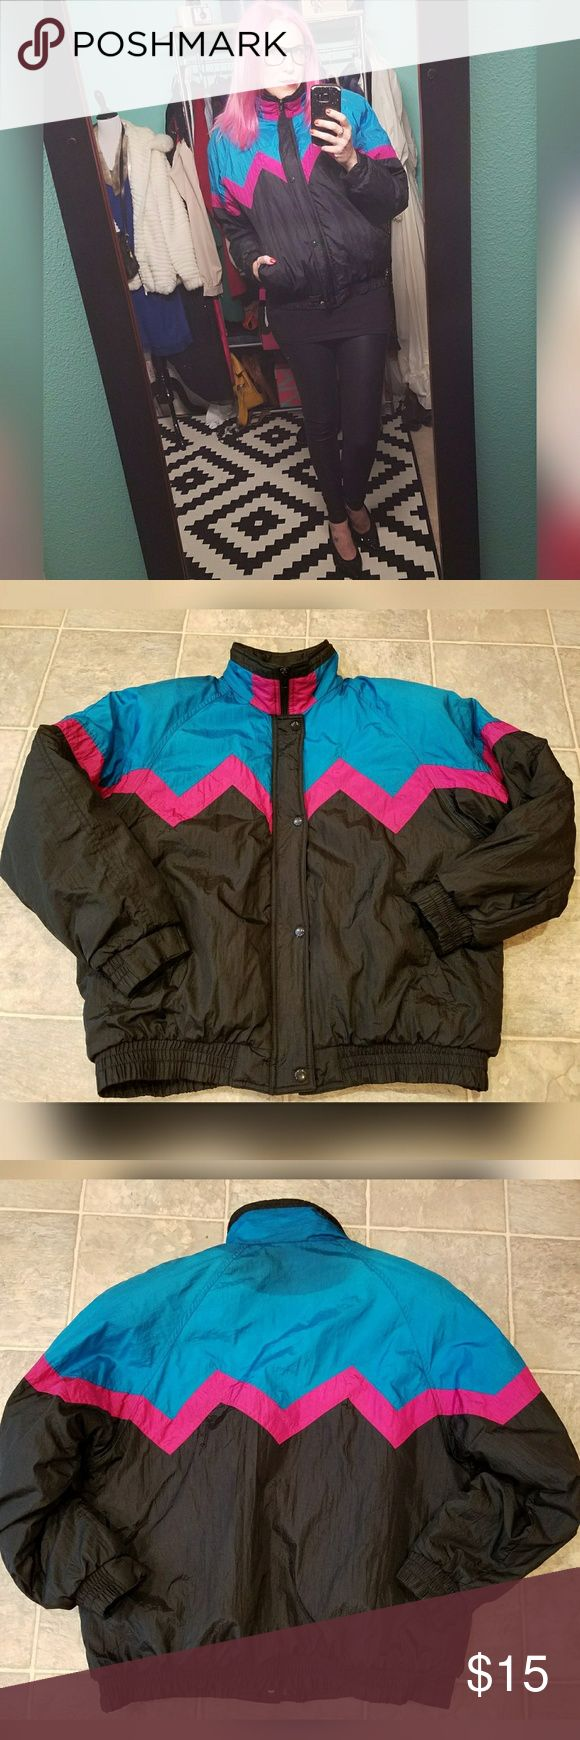 Rad, VINTAGE, winter coat!! Brand is Westside Connection. Size is M. See 6th pic for materials. Zipper and snap closure. Shoulder pads. Discoloraton on back of collar. (See 8th pic). Vintage Jackets & Coats